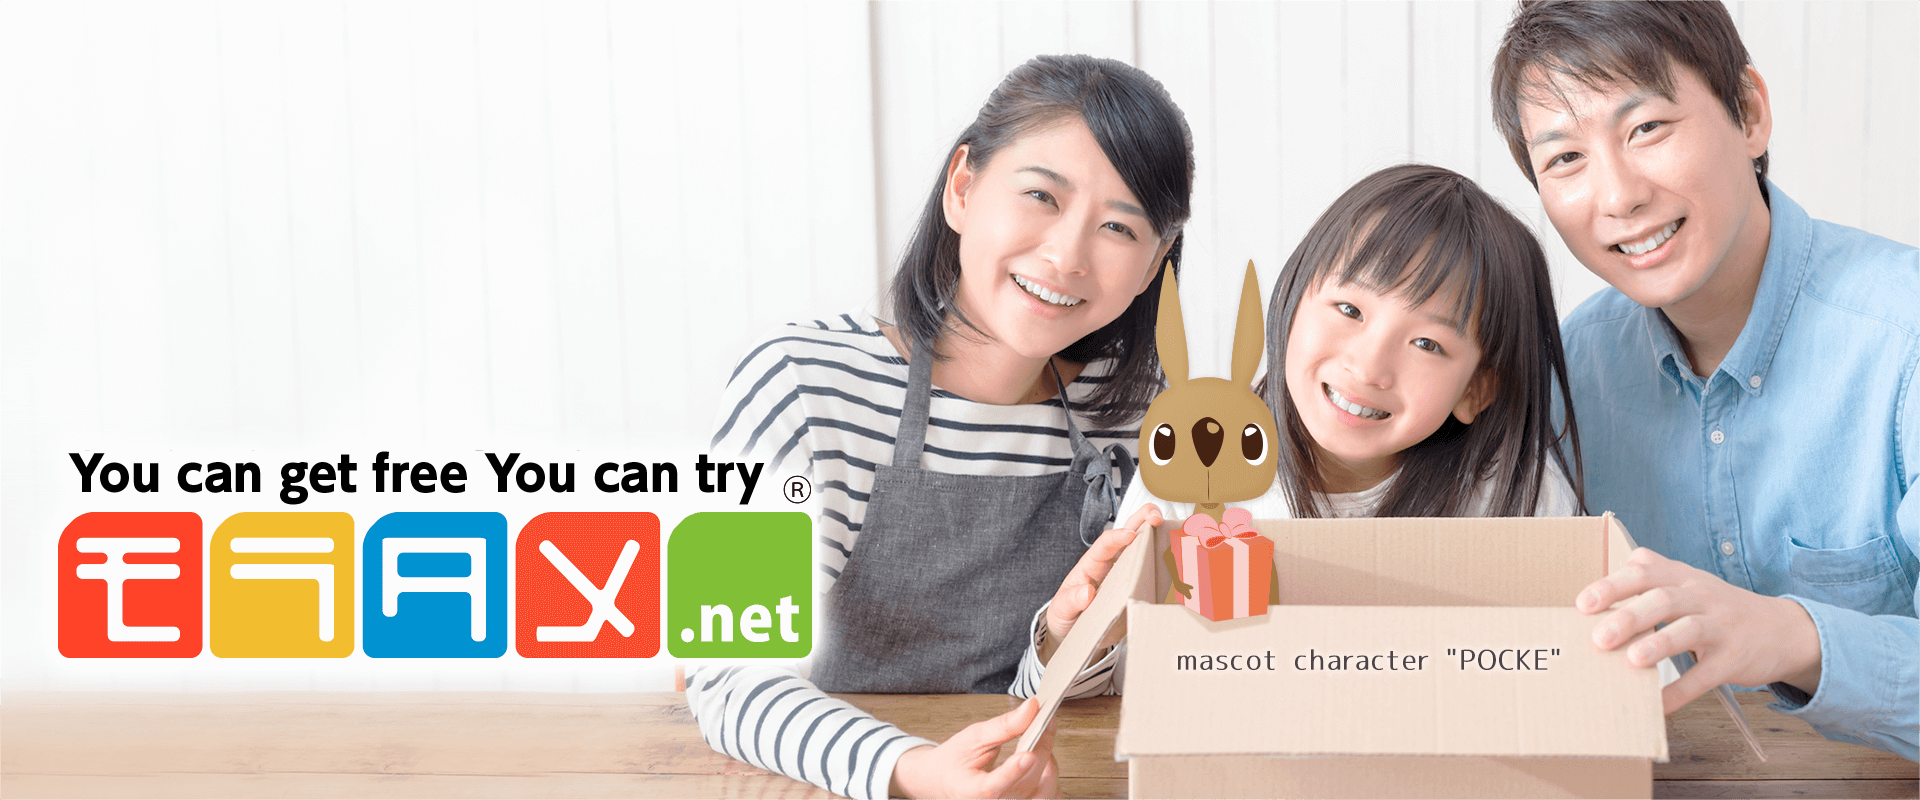 "Deliver ""HAPPY"" to everyone!  Our web site is one of the largest product trial sites in Japan. You can get free You can try moratame.net"